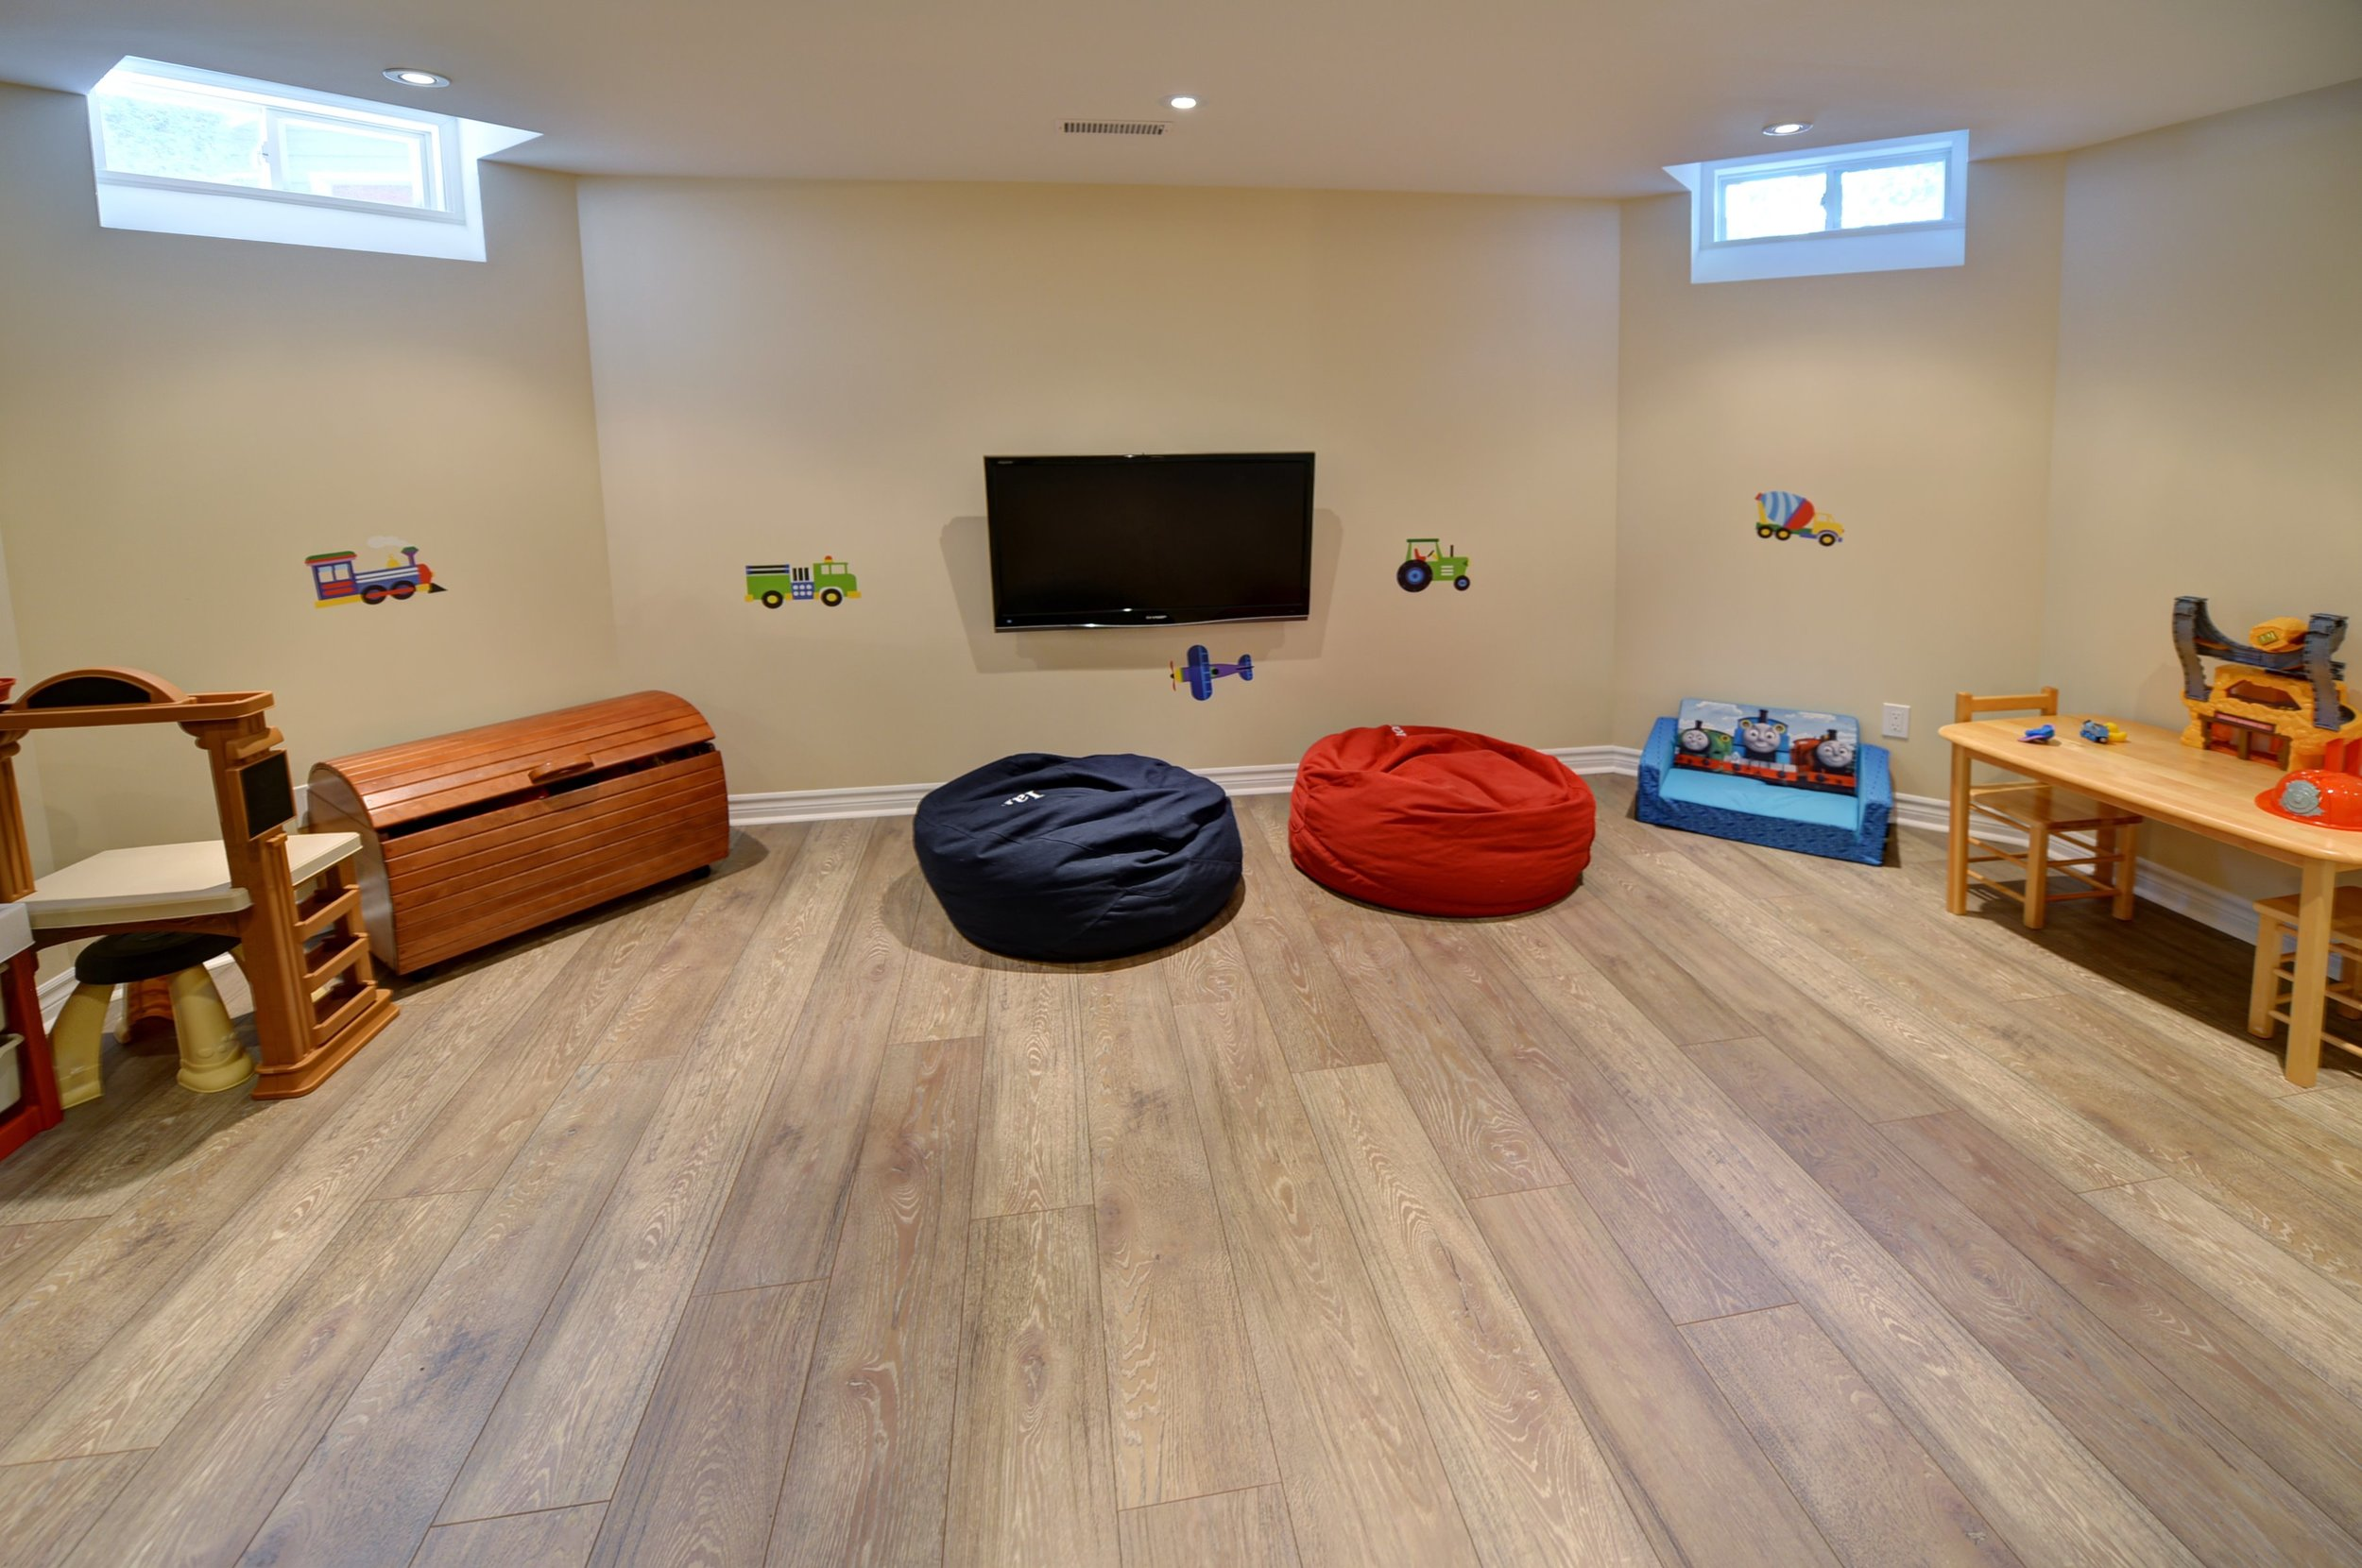 2767_guilford_crescent_MLS30538562_HID1121270_ROOMplayroom.jpg